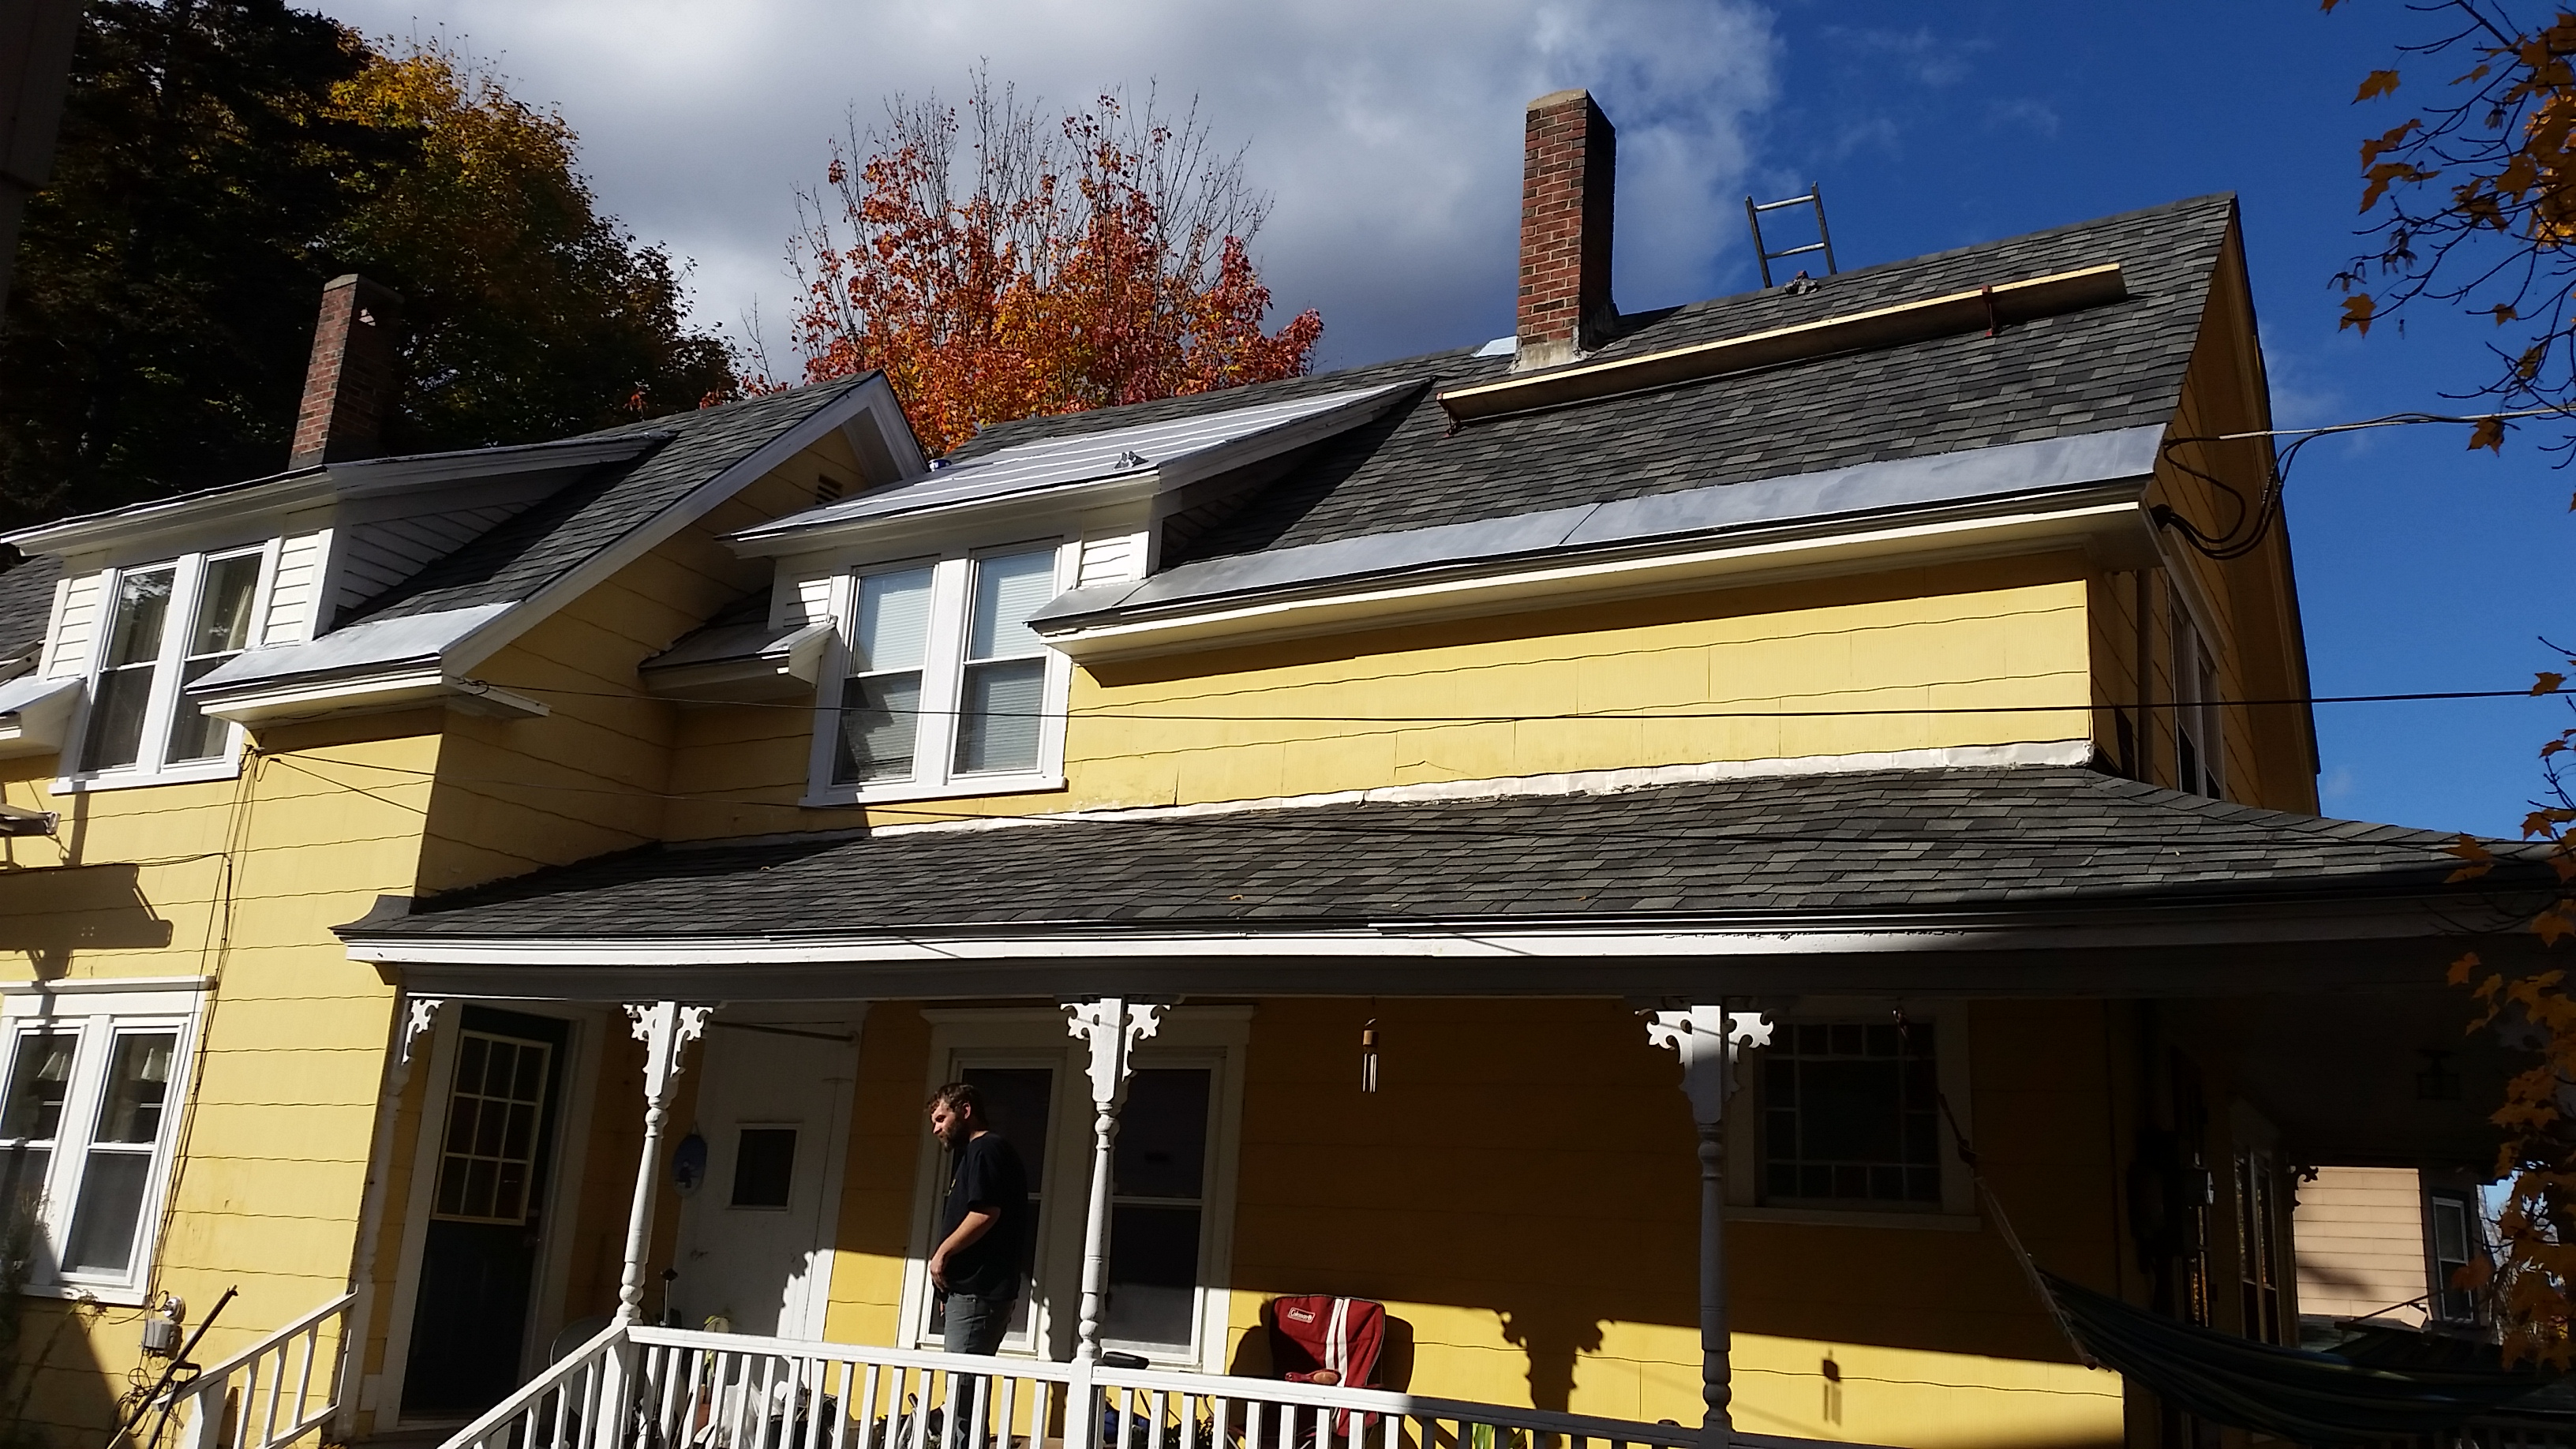 Dormers and Trim